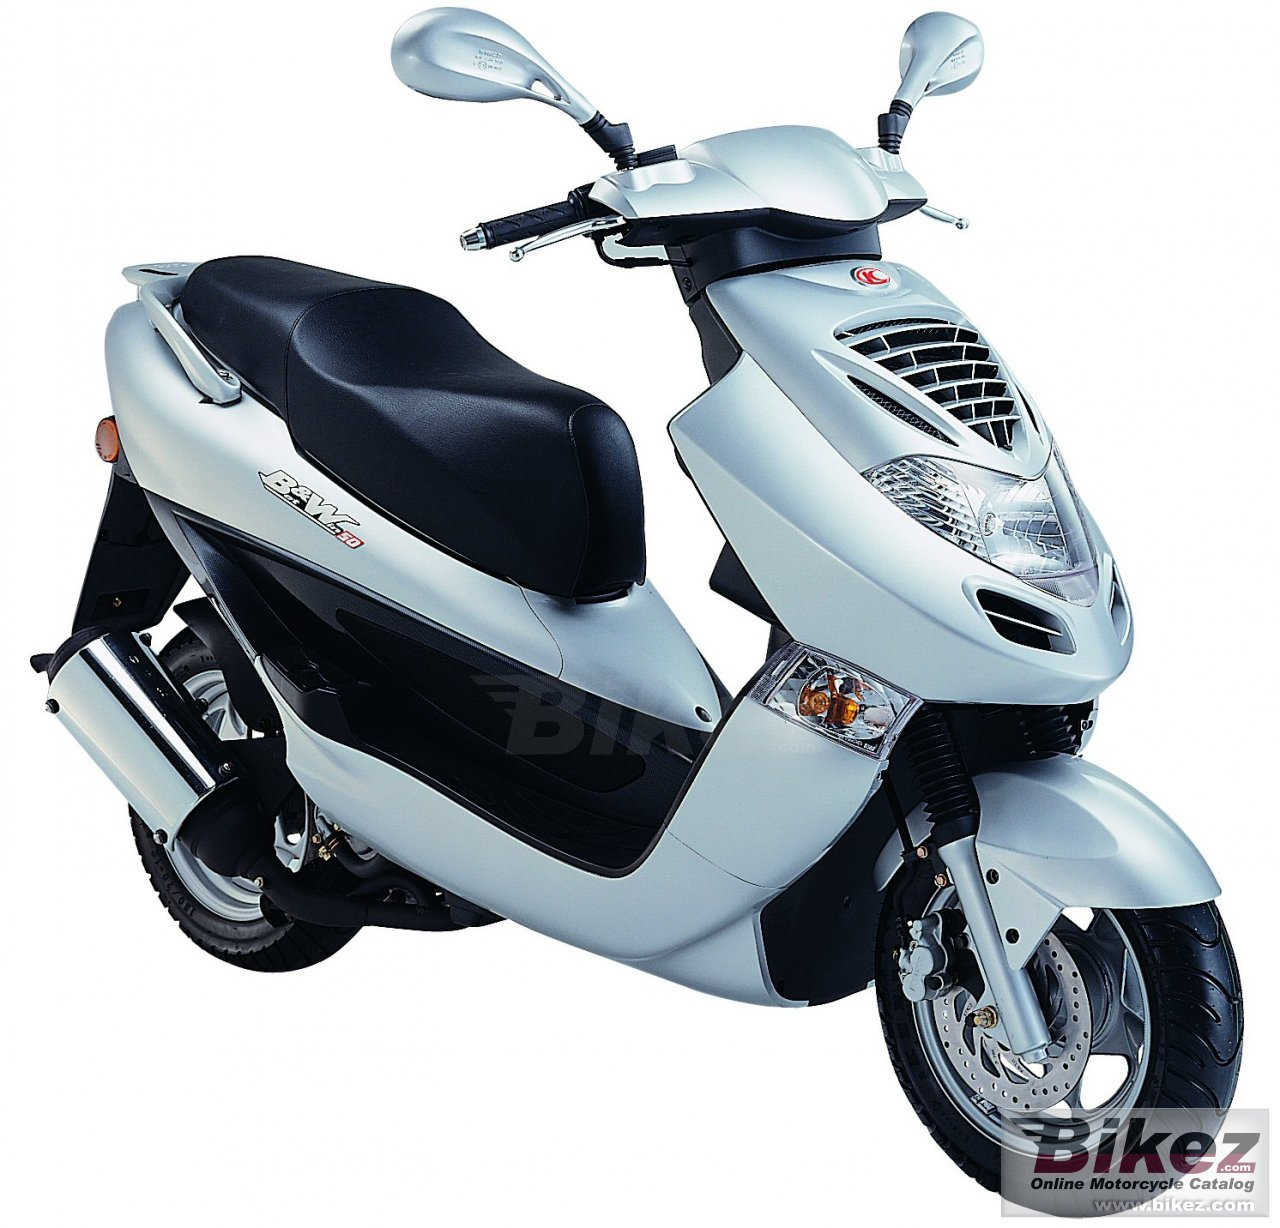 Kymco Heroism 150 1999 images #100665